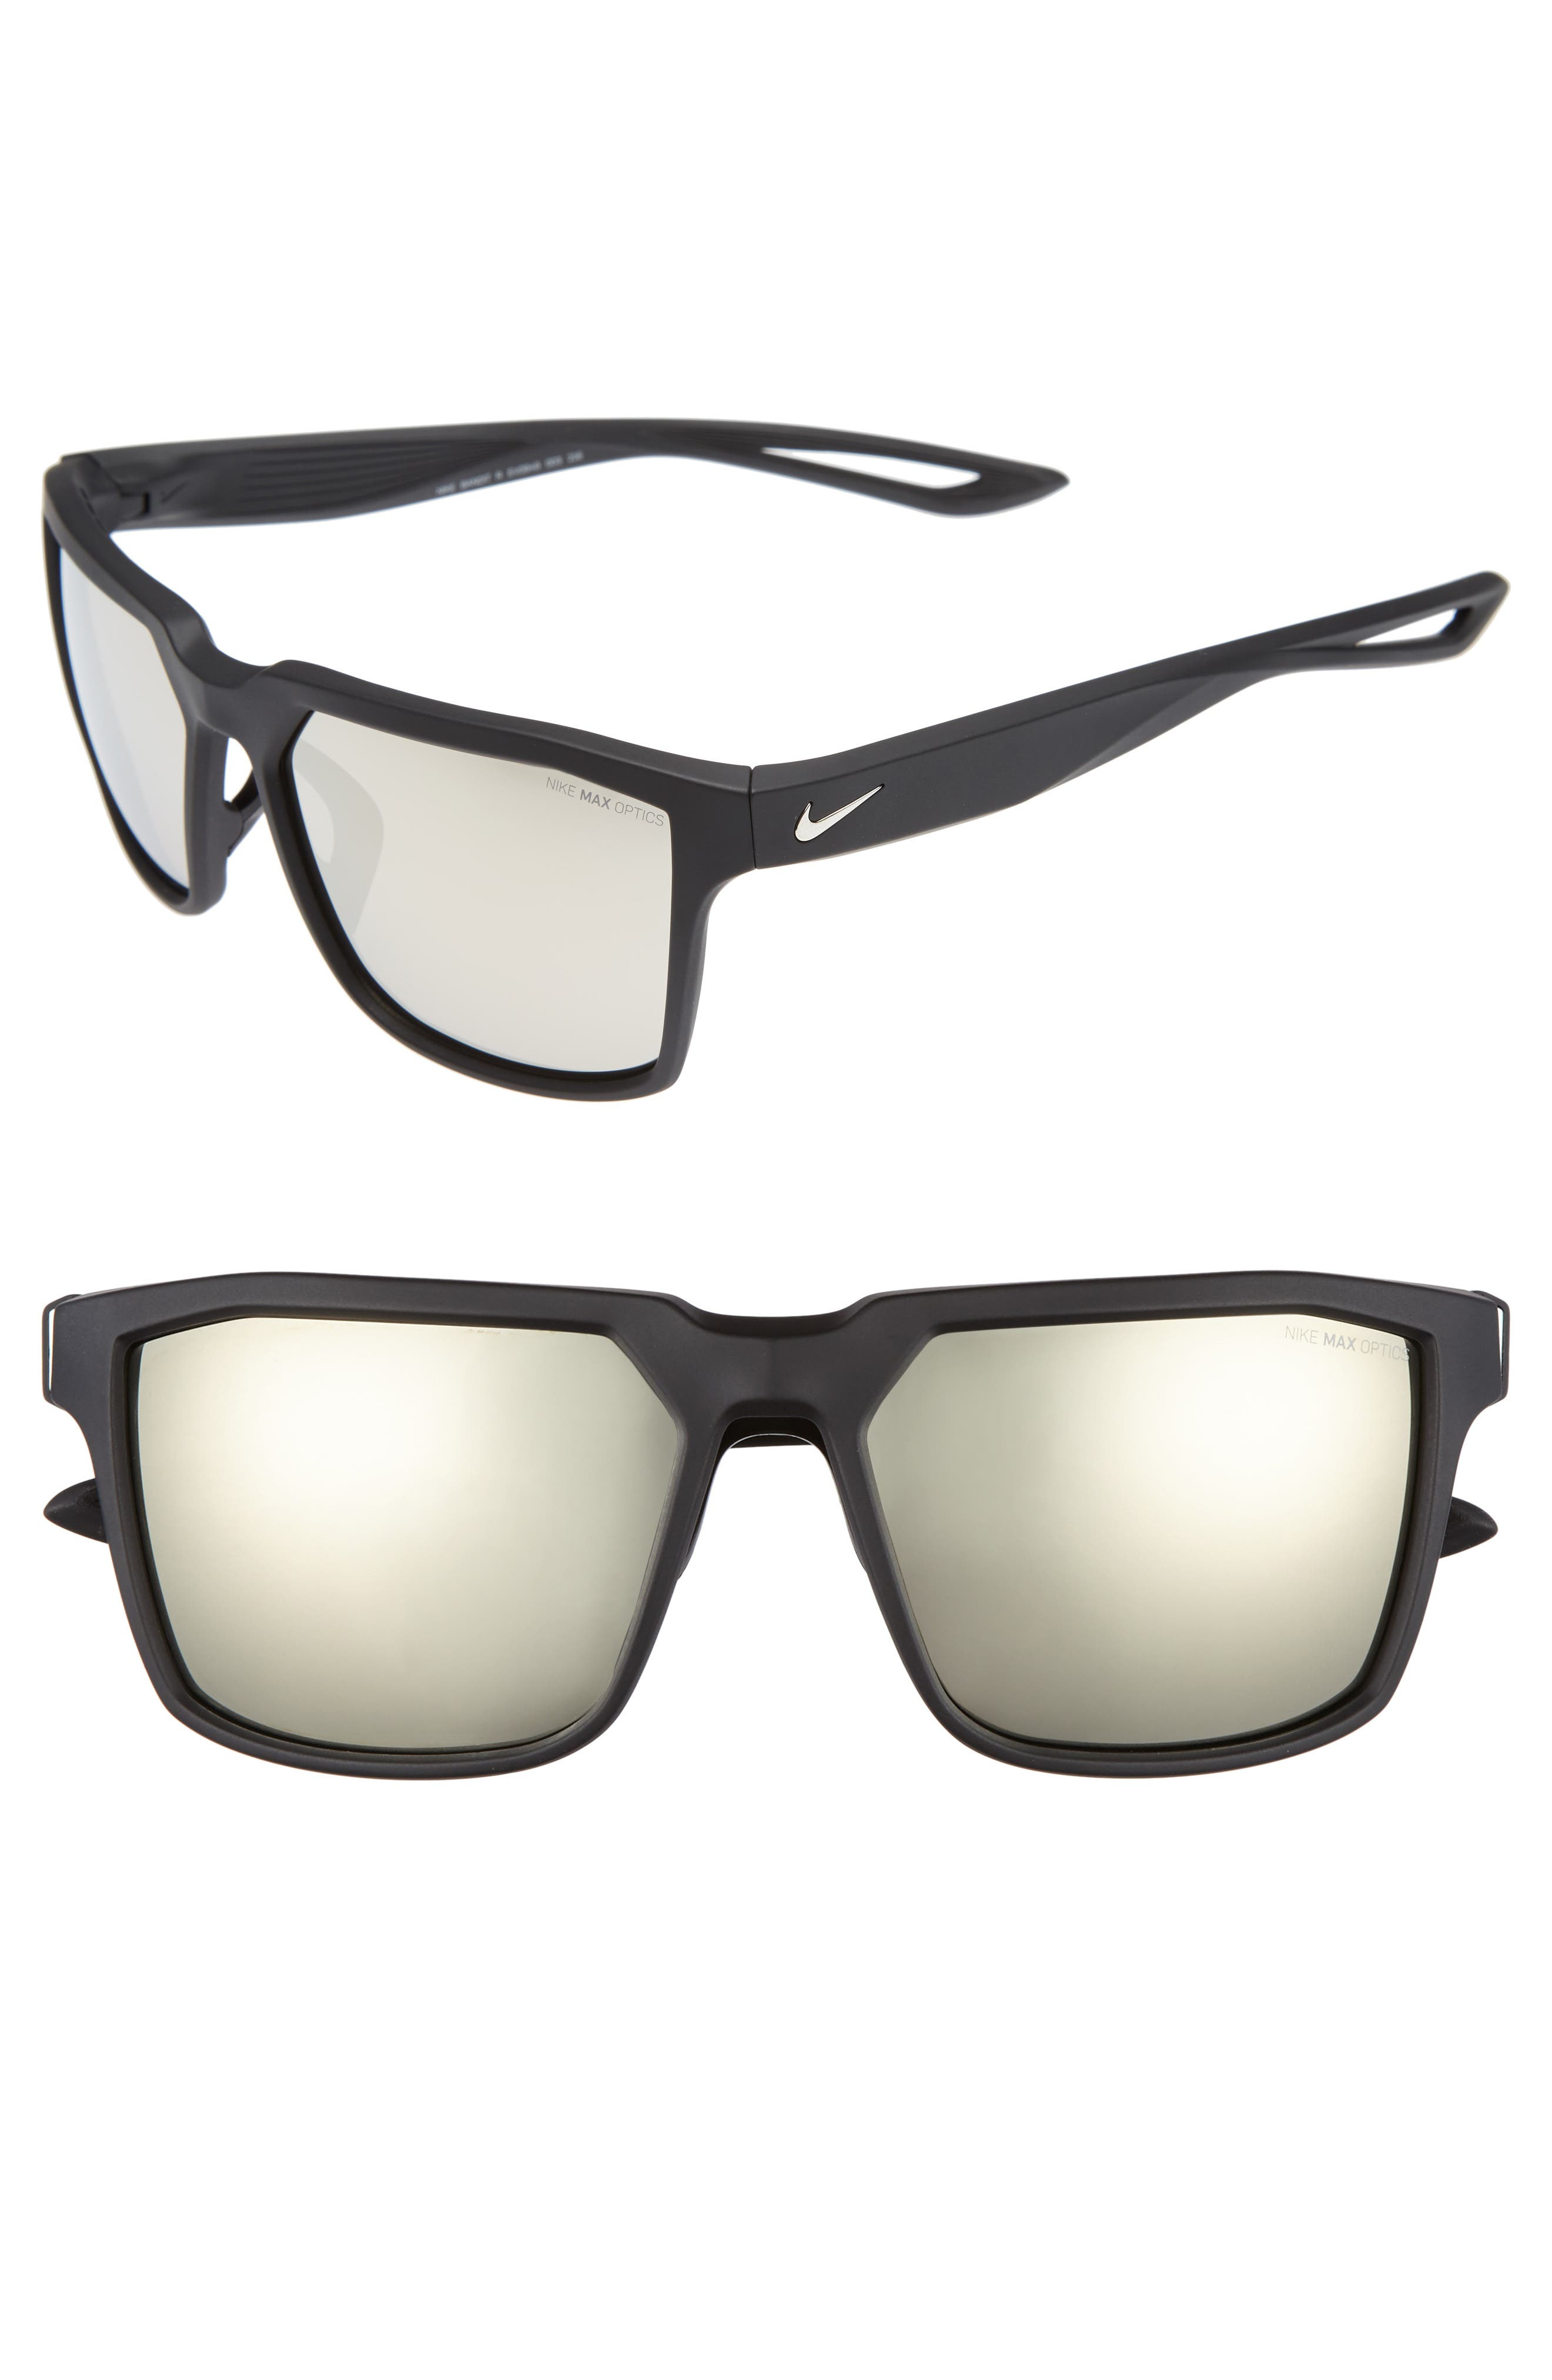 Bandit R 59mm Sunglasses,                         Main,                         color, MATTE BLACK/ SILVER